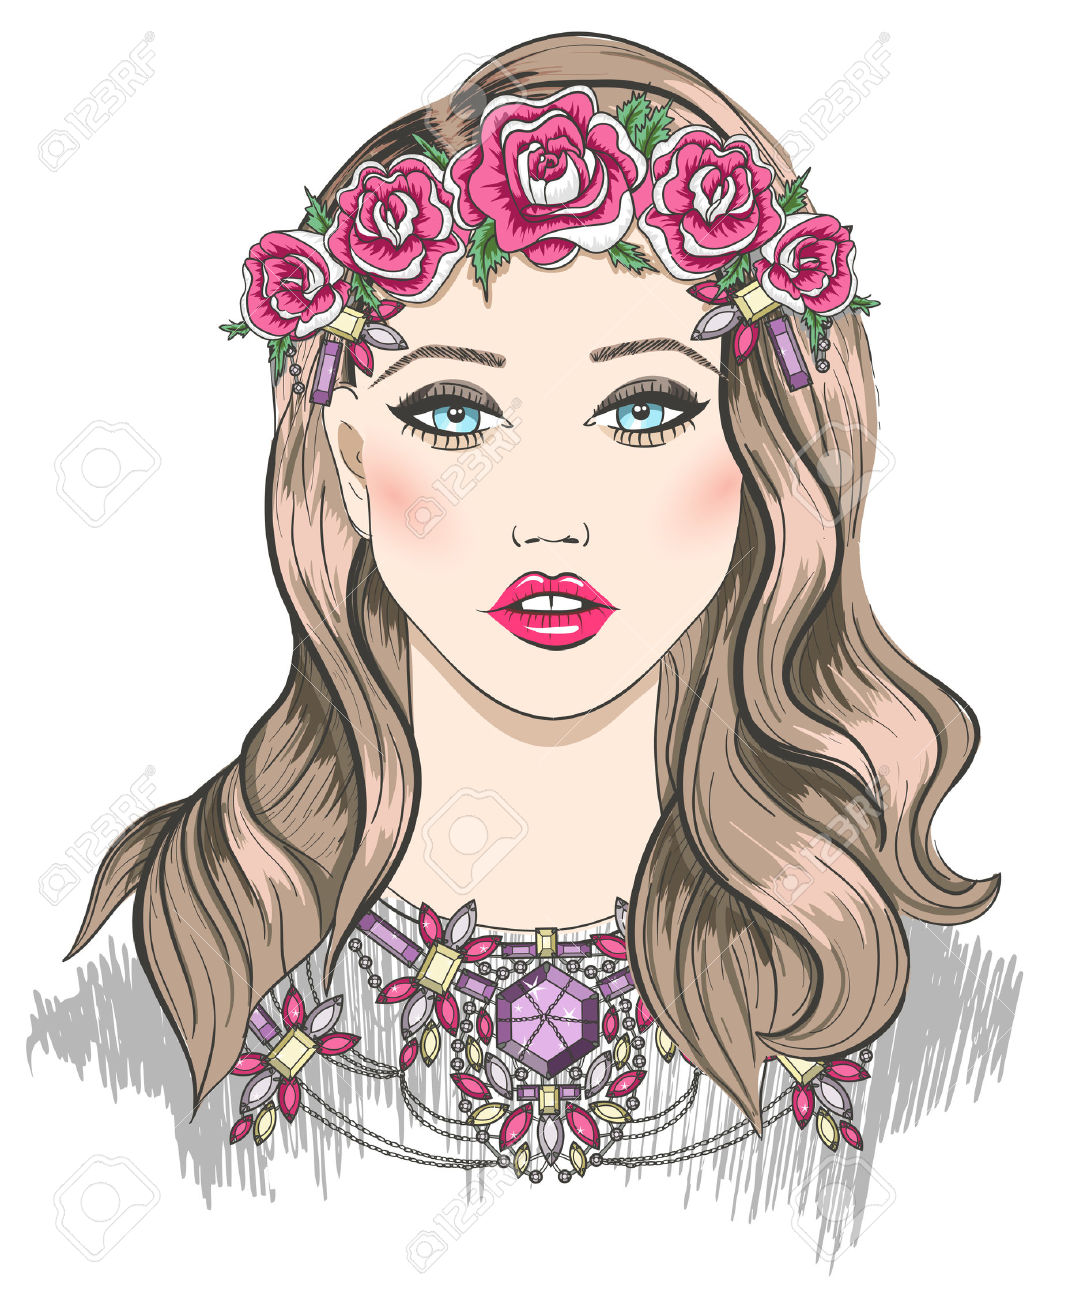 1072x1300 23764058 Young Girl Fashion Illustration Girl With Flowers In Her